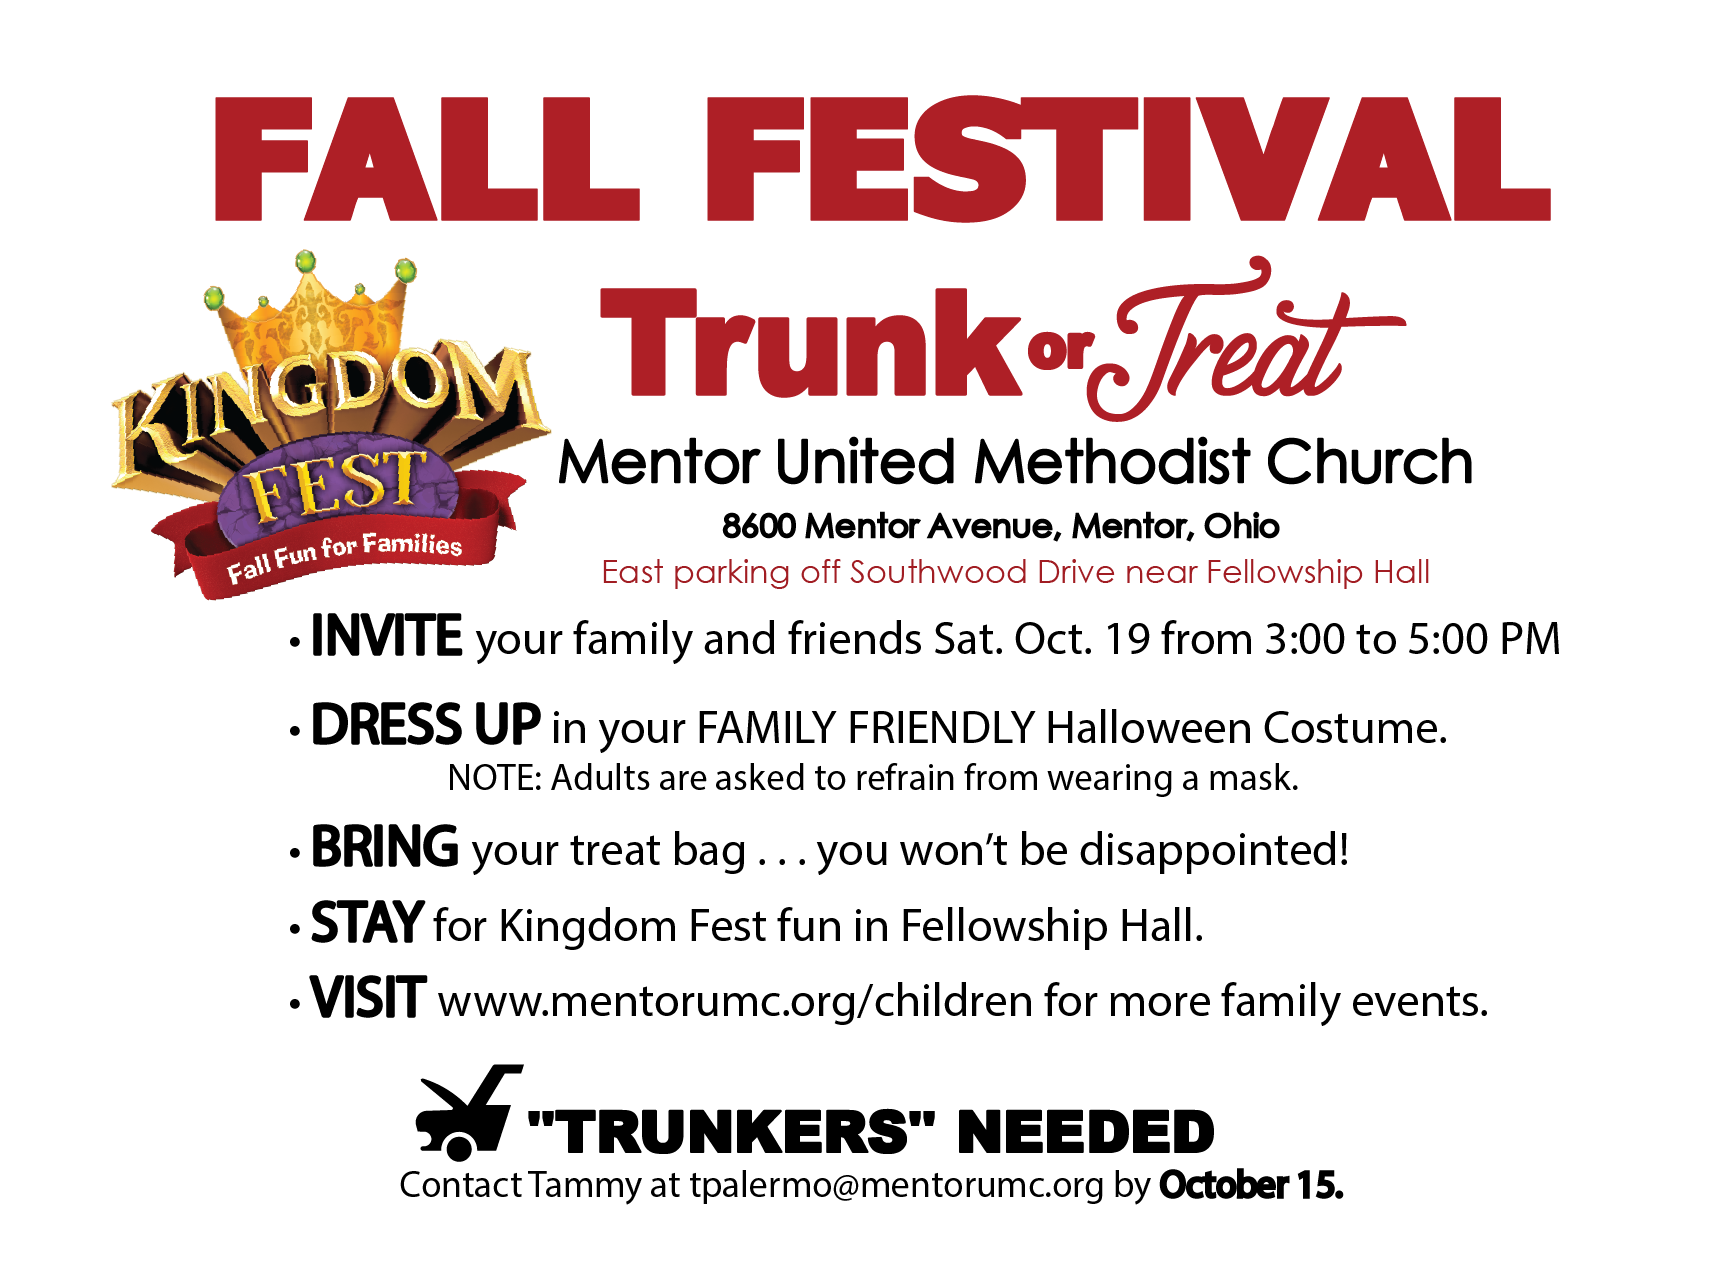 Sign up to be a Trunker at Fall Fest's Trunk or Treat!